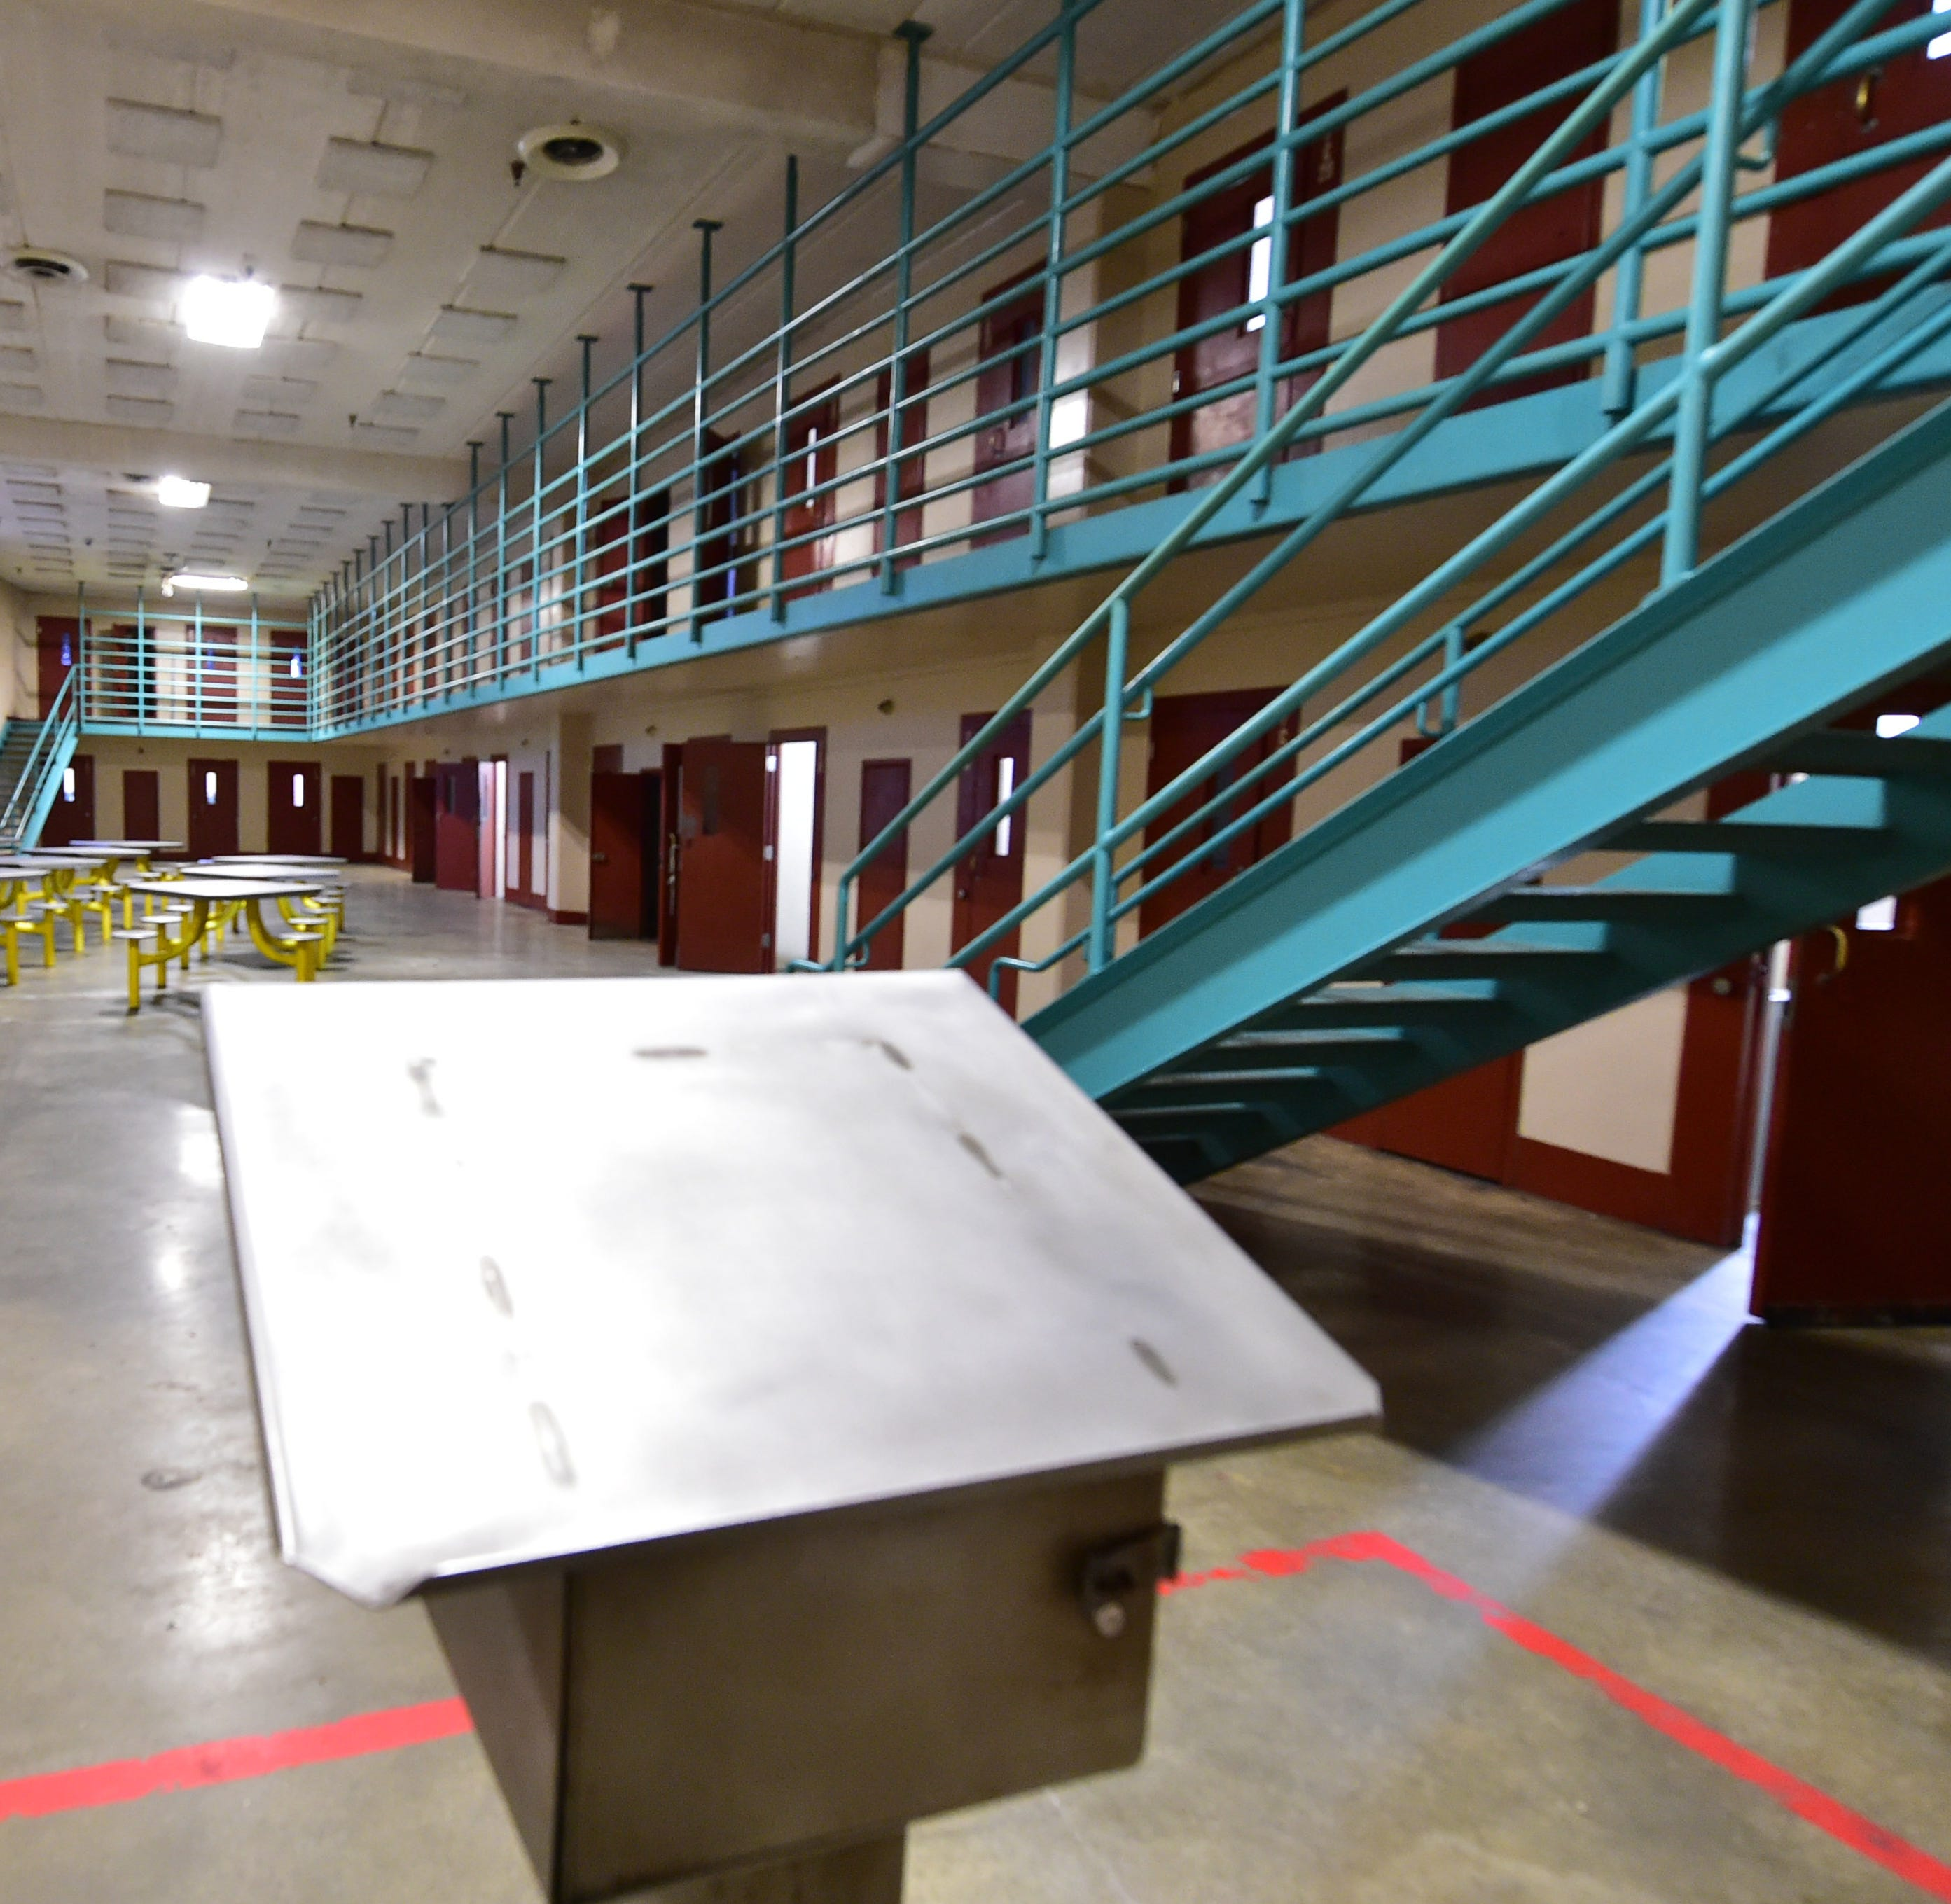 A guard's stand in a cell block of Walnut Grove Correctional Facility remains empty without inmates to look after. While the state closed the facility in 2016, Mississippi taxpayers are still paying the $97.4 million the state still owes on the facility and related services. Thursday, Dec. 20, 2018